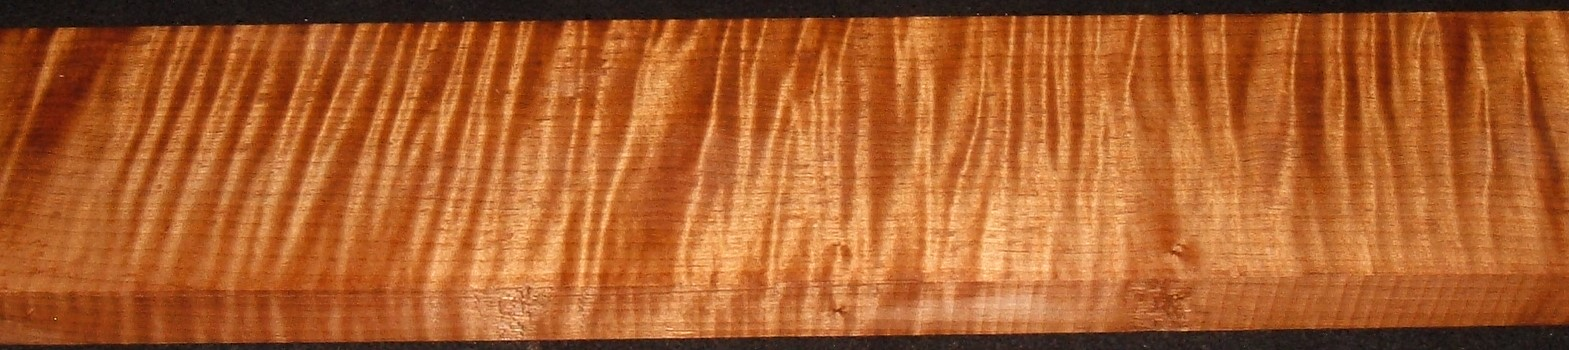 QRM2010-357JK, 1-3/16x5-1/4x46, Quartersawn Roasted Curly Maple